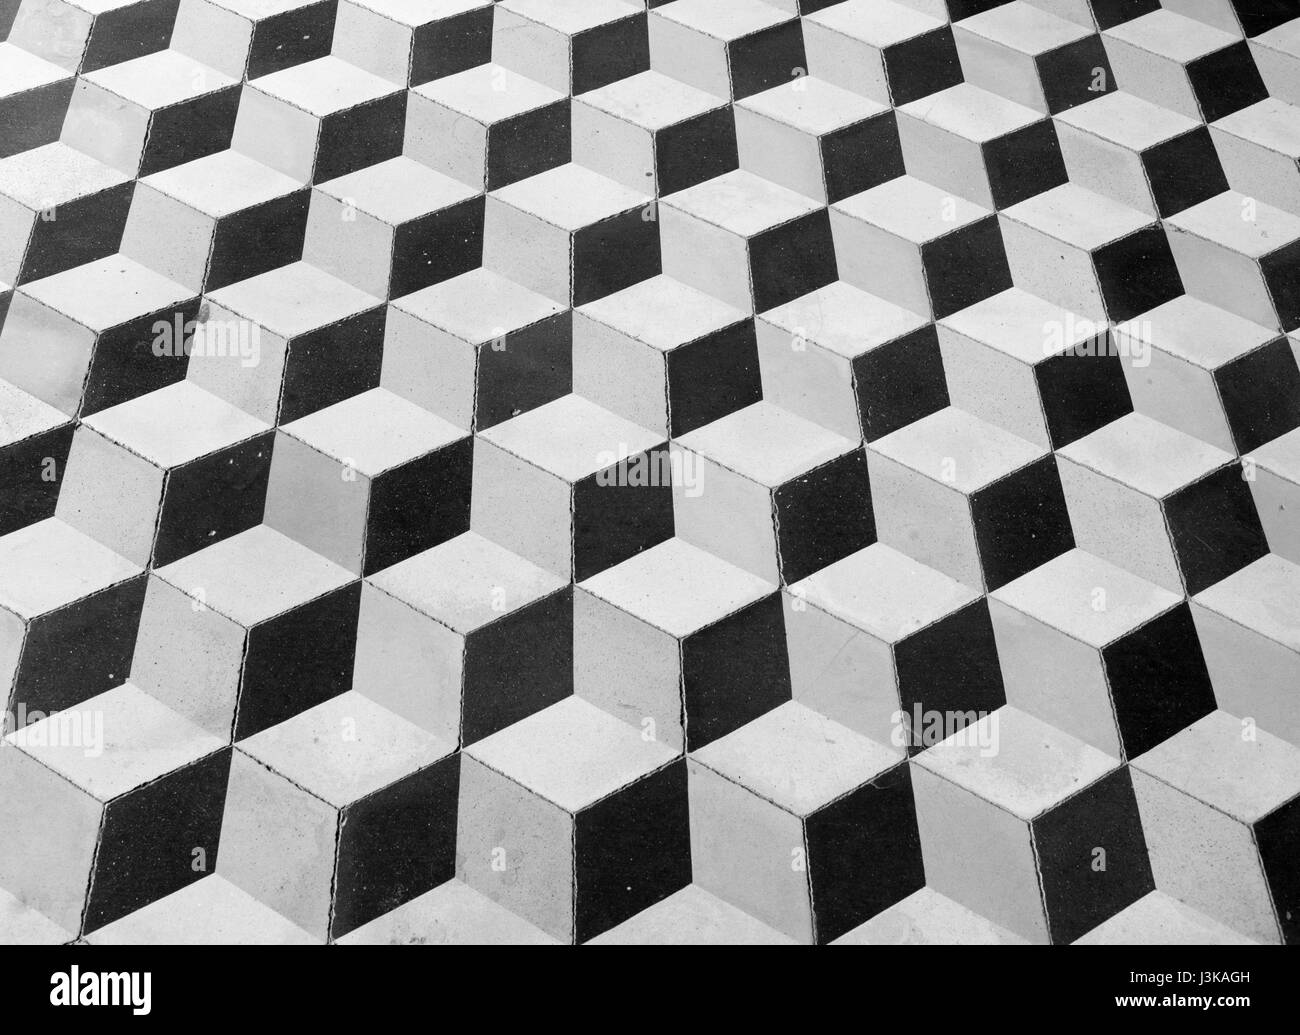 chequered floor - Stock Image